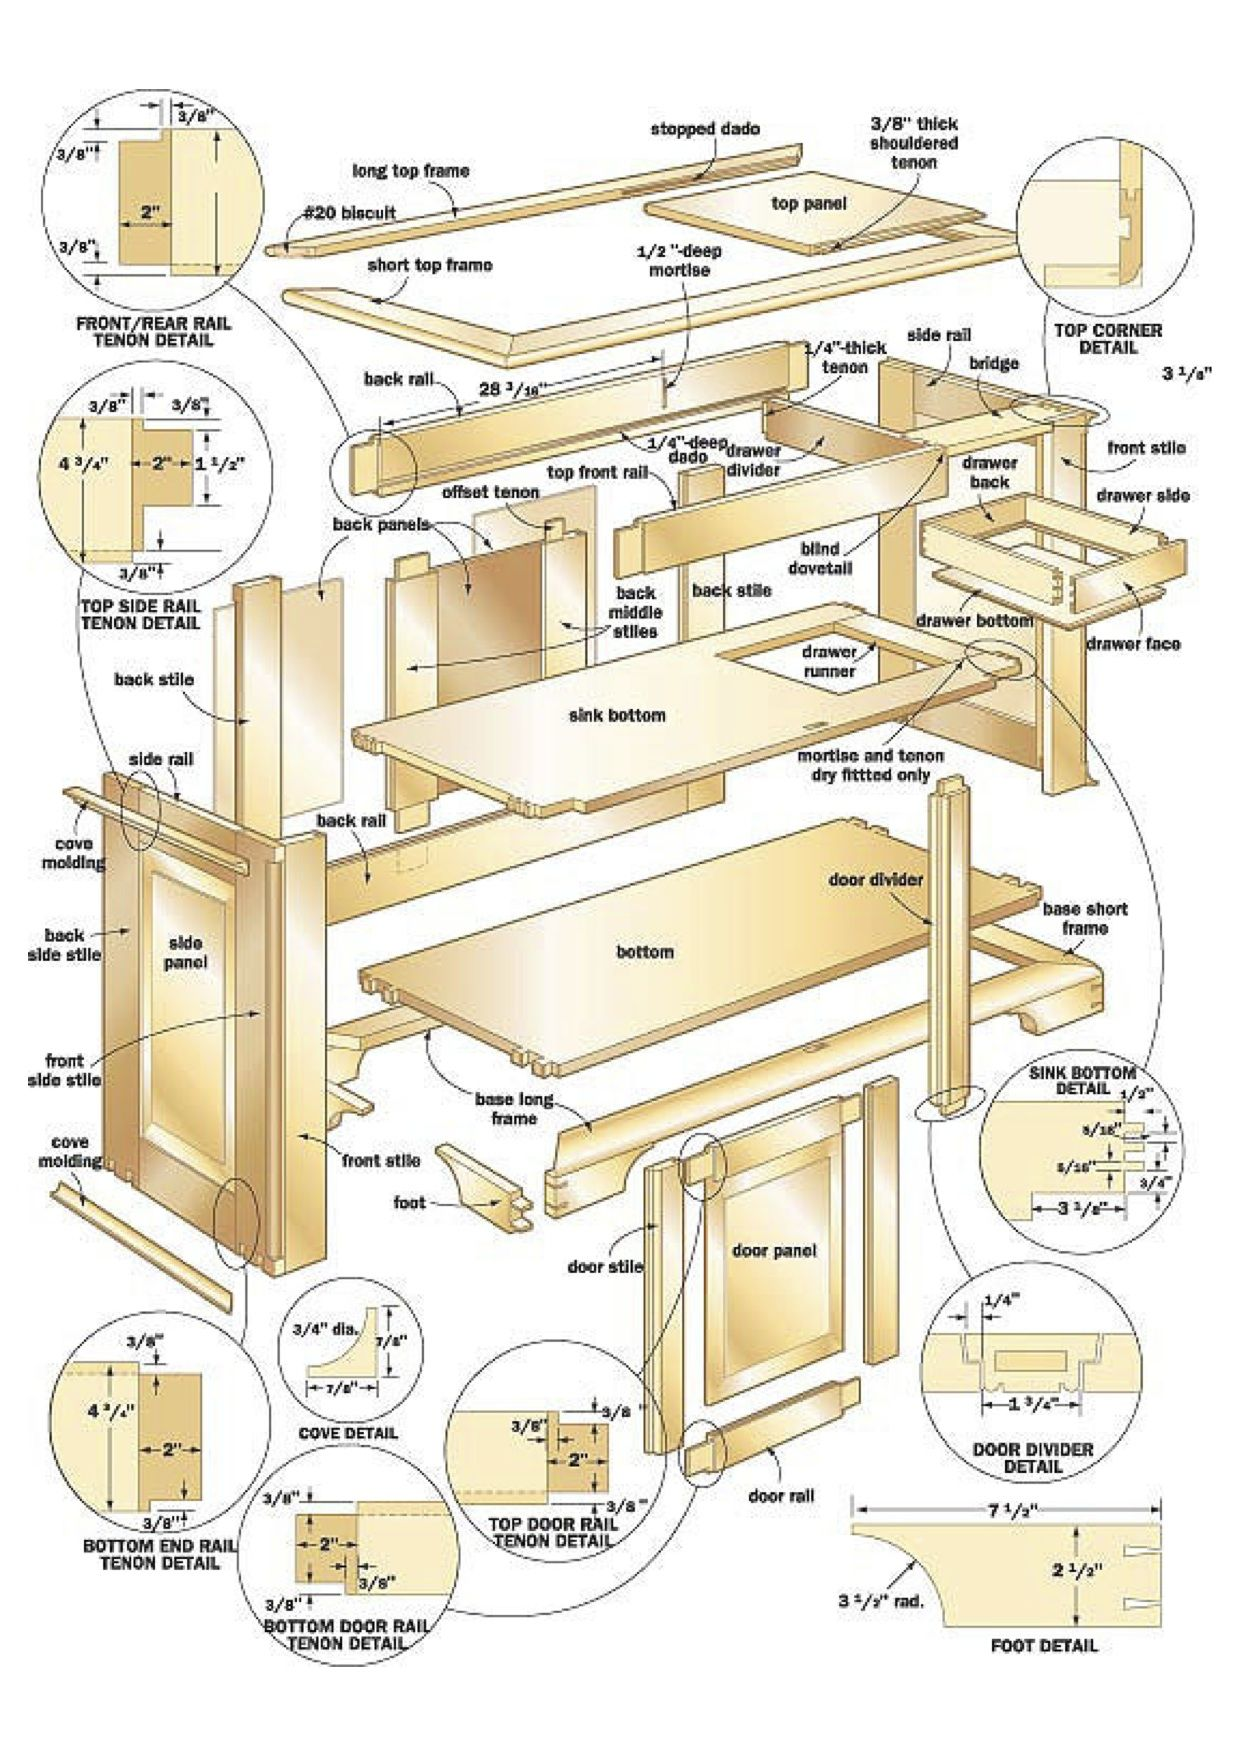 Woodworking Plans Woodworking plans See more Find hundreds of detailed woodworking plans to help with your